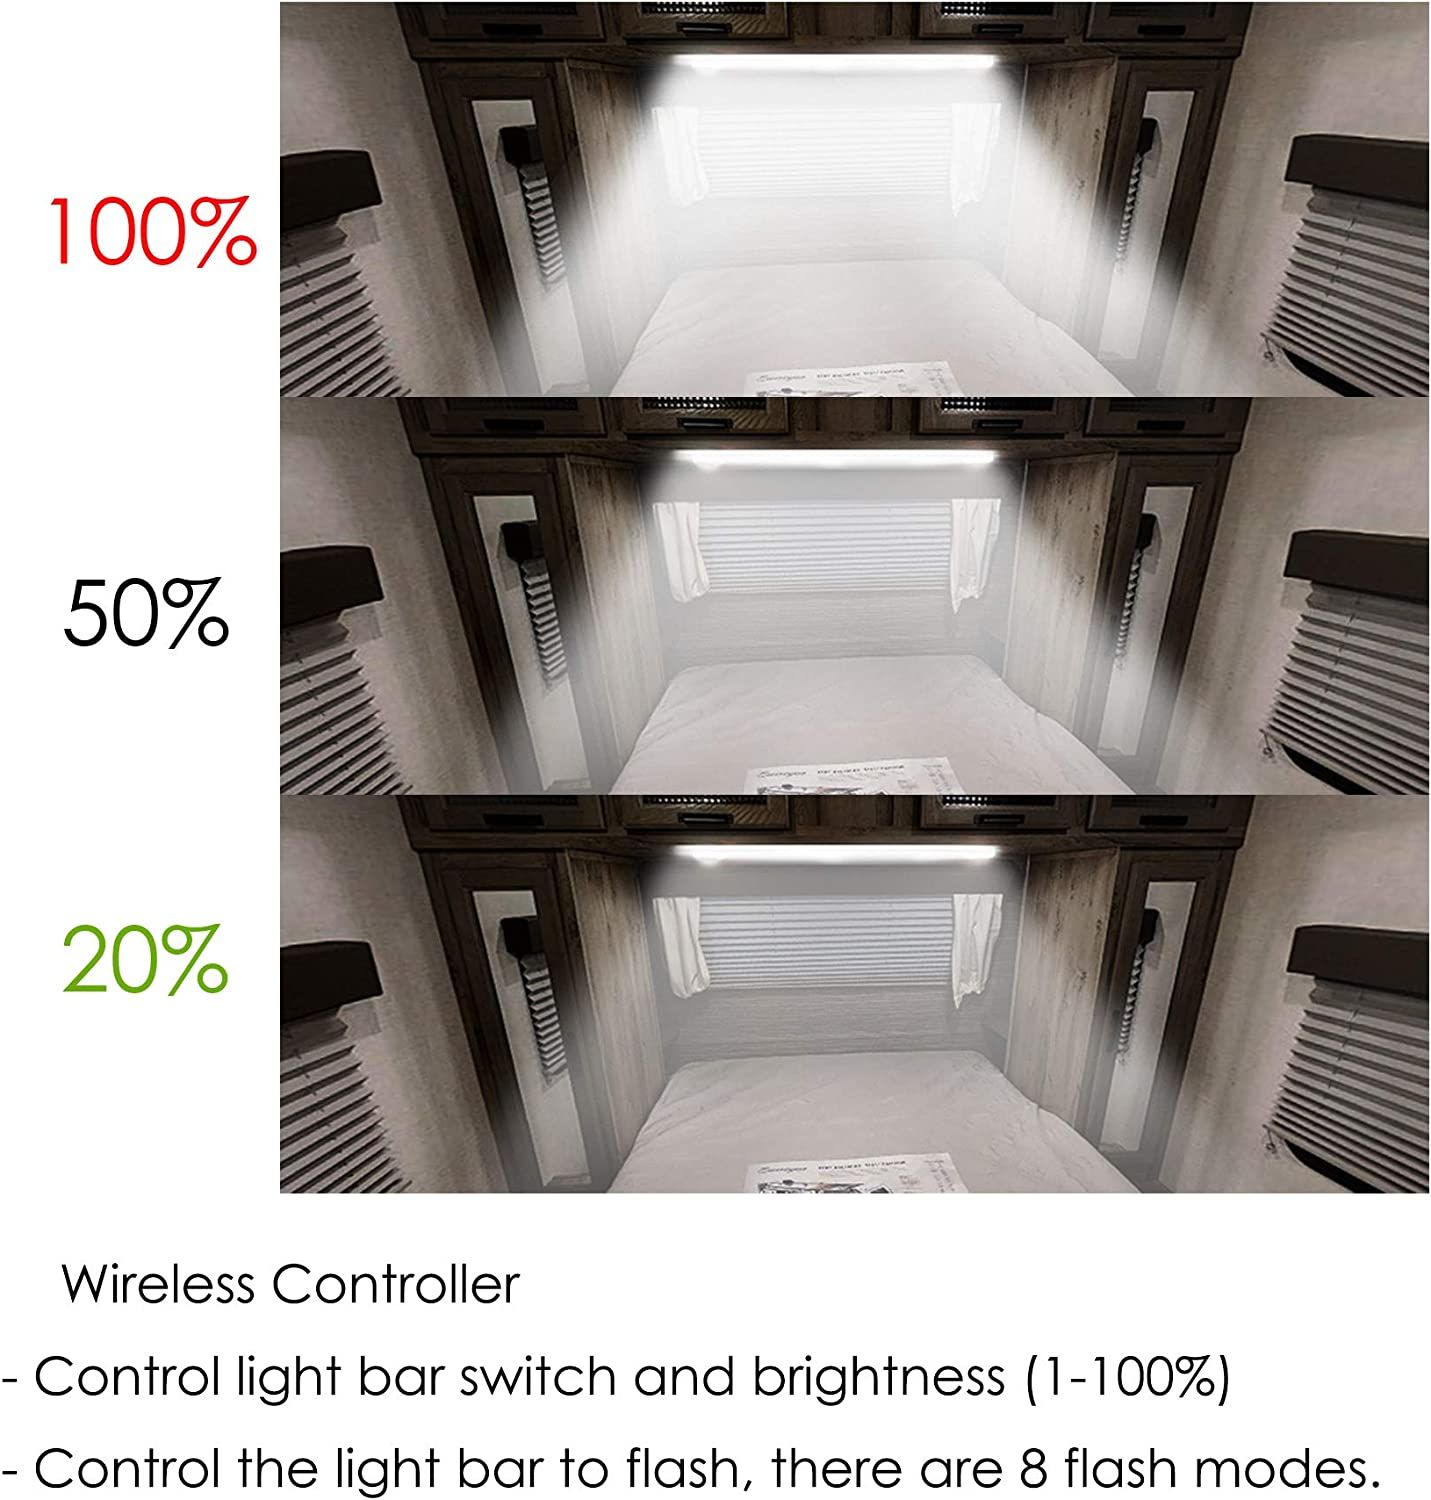 RV for Van Ceiling Dome Lighting Fixture with Wireless Controller Switch and 7 Flashing Modes Camper Trailer 12-24V, 12W, 6000K Boat LE-JX Universal 40 RV Interior Lighting Led Light Bar